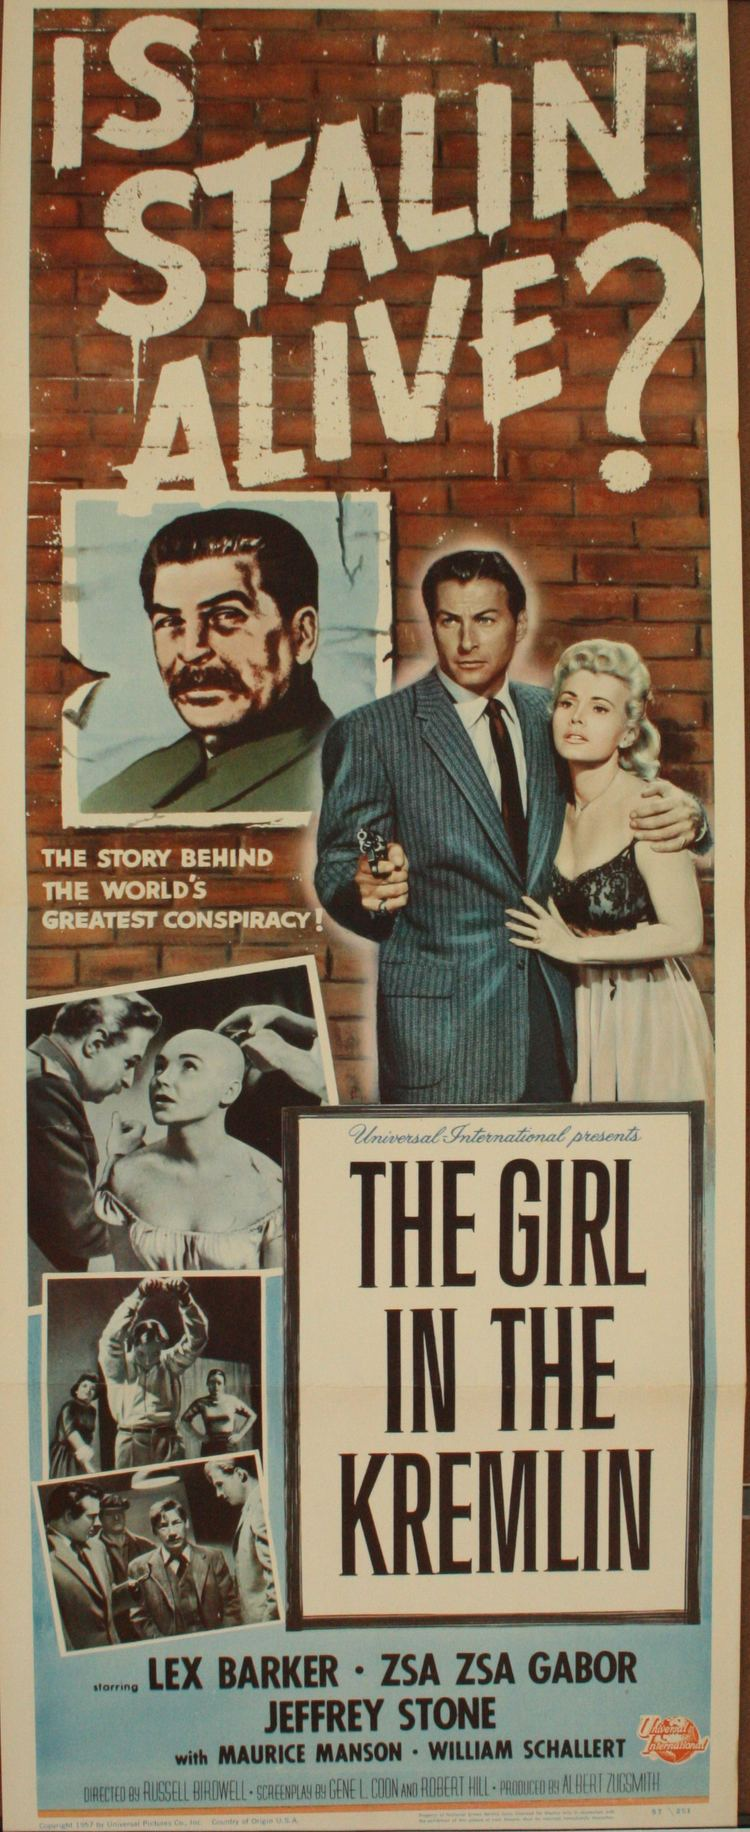 The Girl in the Kremlin GIRL IN THE KREMLIN Insert Poster